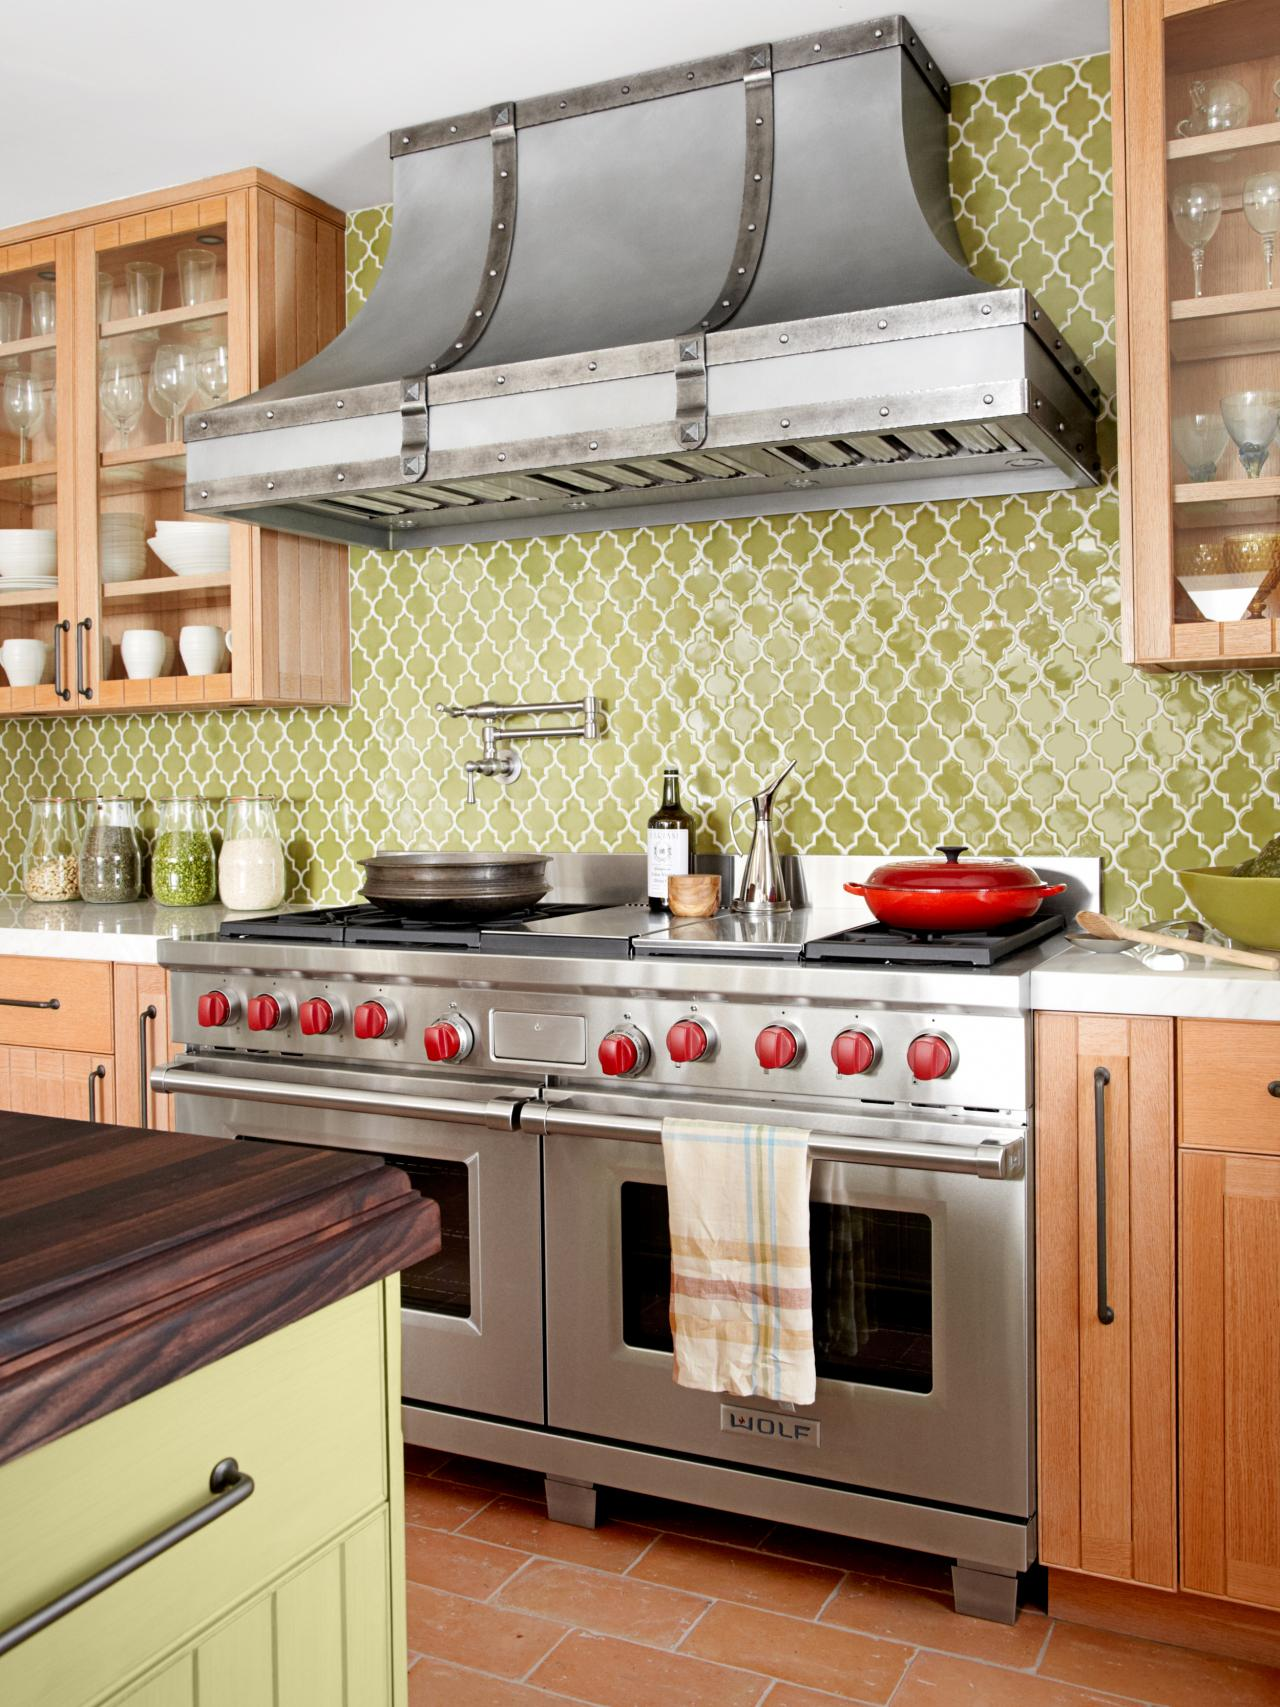 Delicieux Kitchen Backsplash